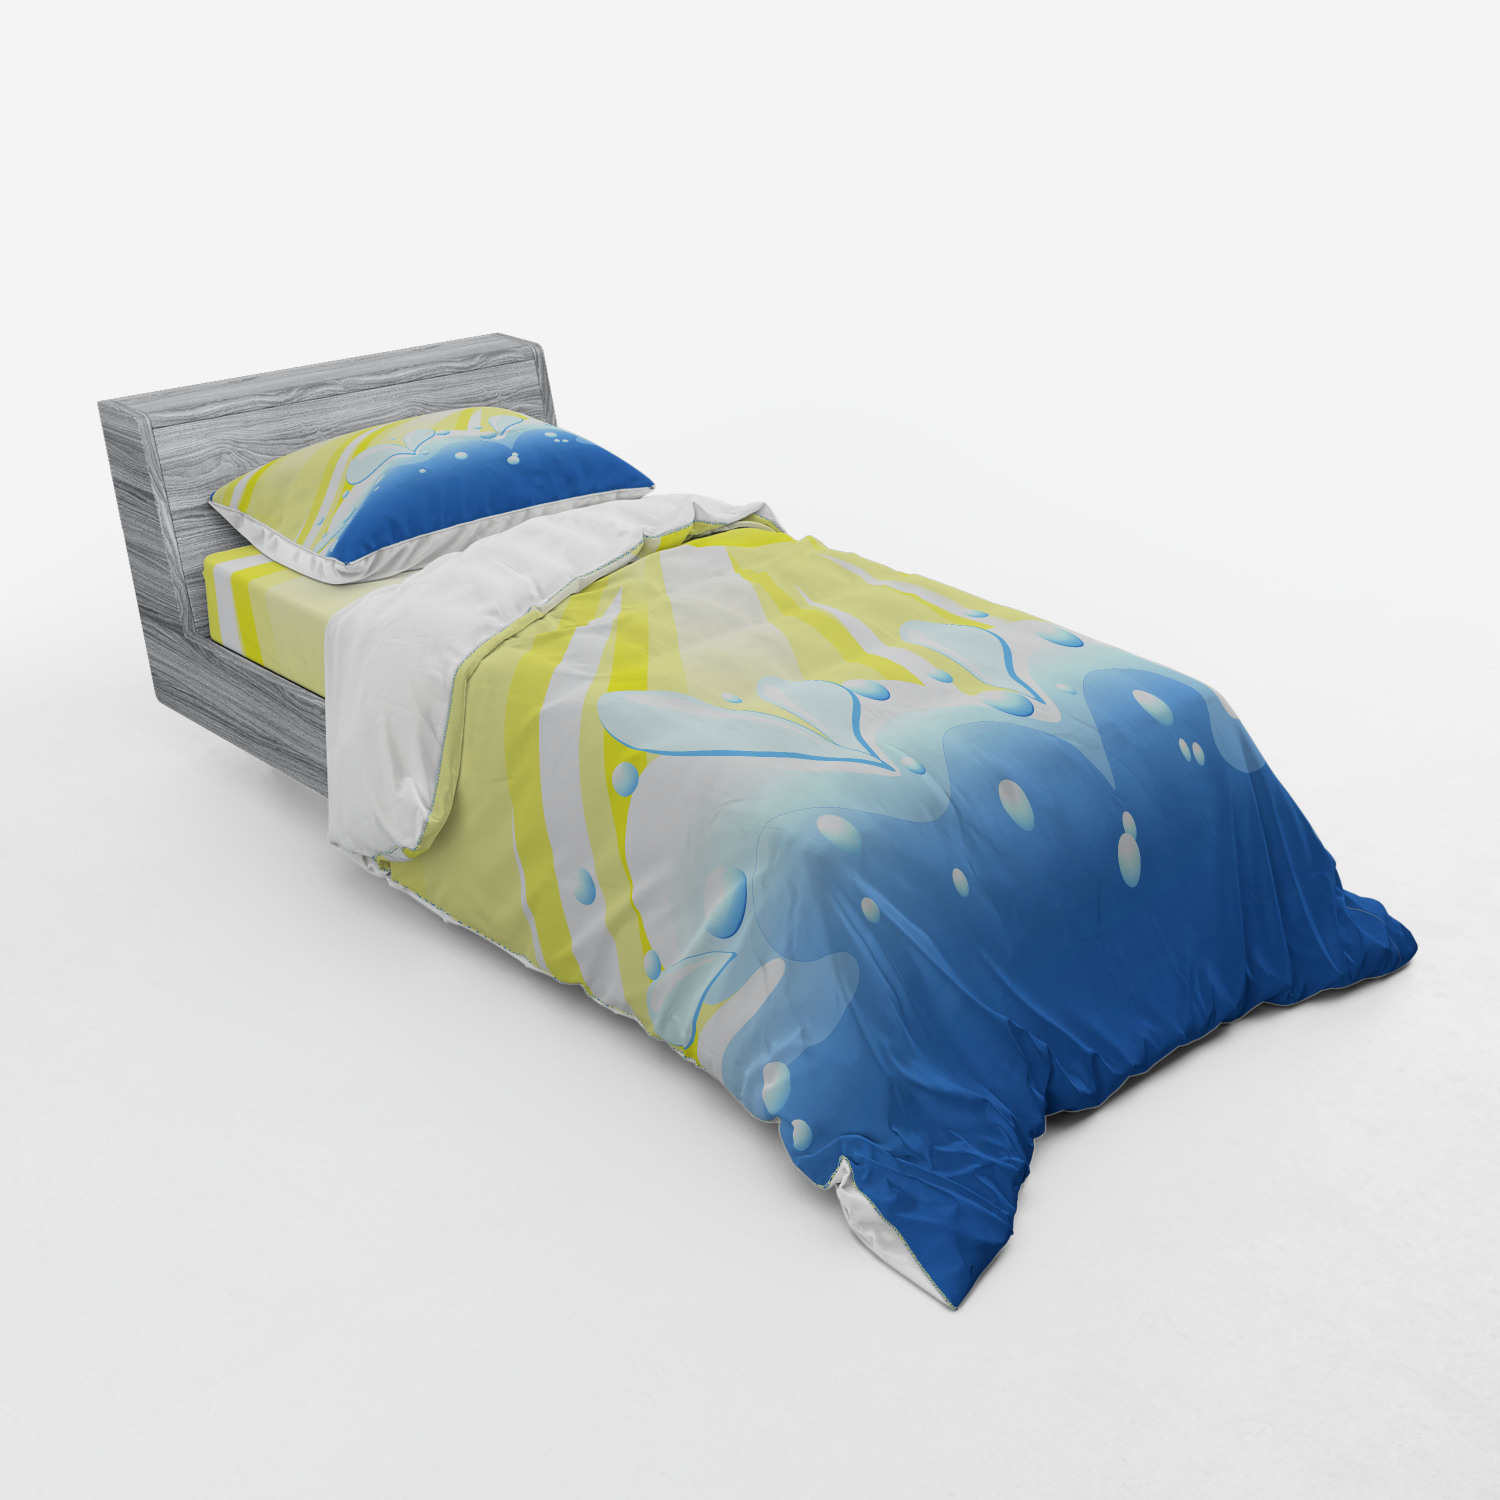 thumbnail 217 - Ambesonne Summer Bedding Set Duvet Cover Sham Fitted Sheet in 3 Sizes